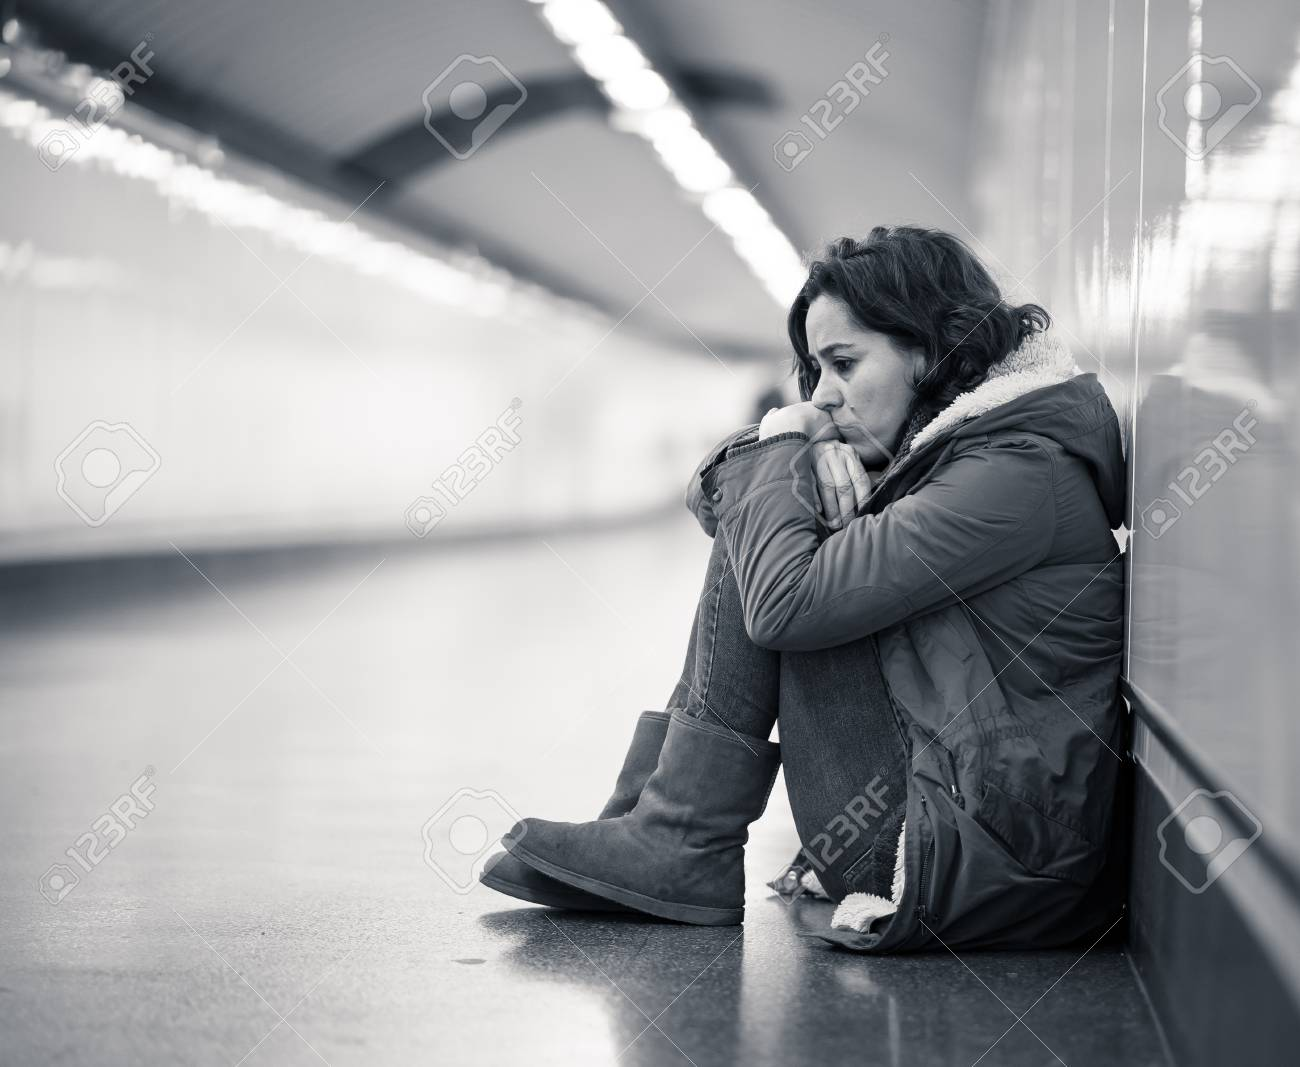 Stock photo young adult felling shame depressed and hopeless sitting alone on subway city ground in depression loneliness mental health emotional pain